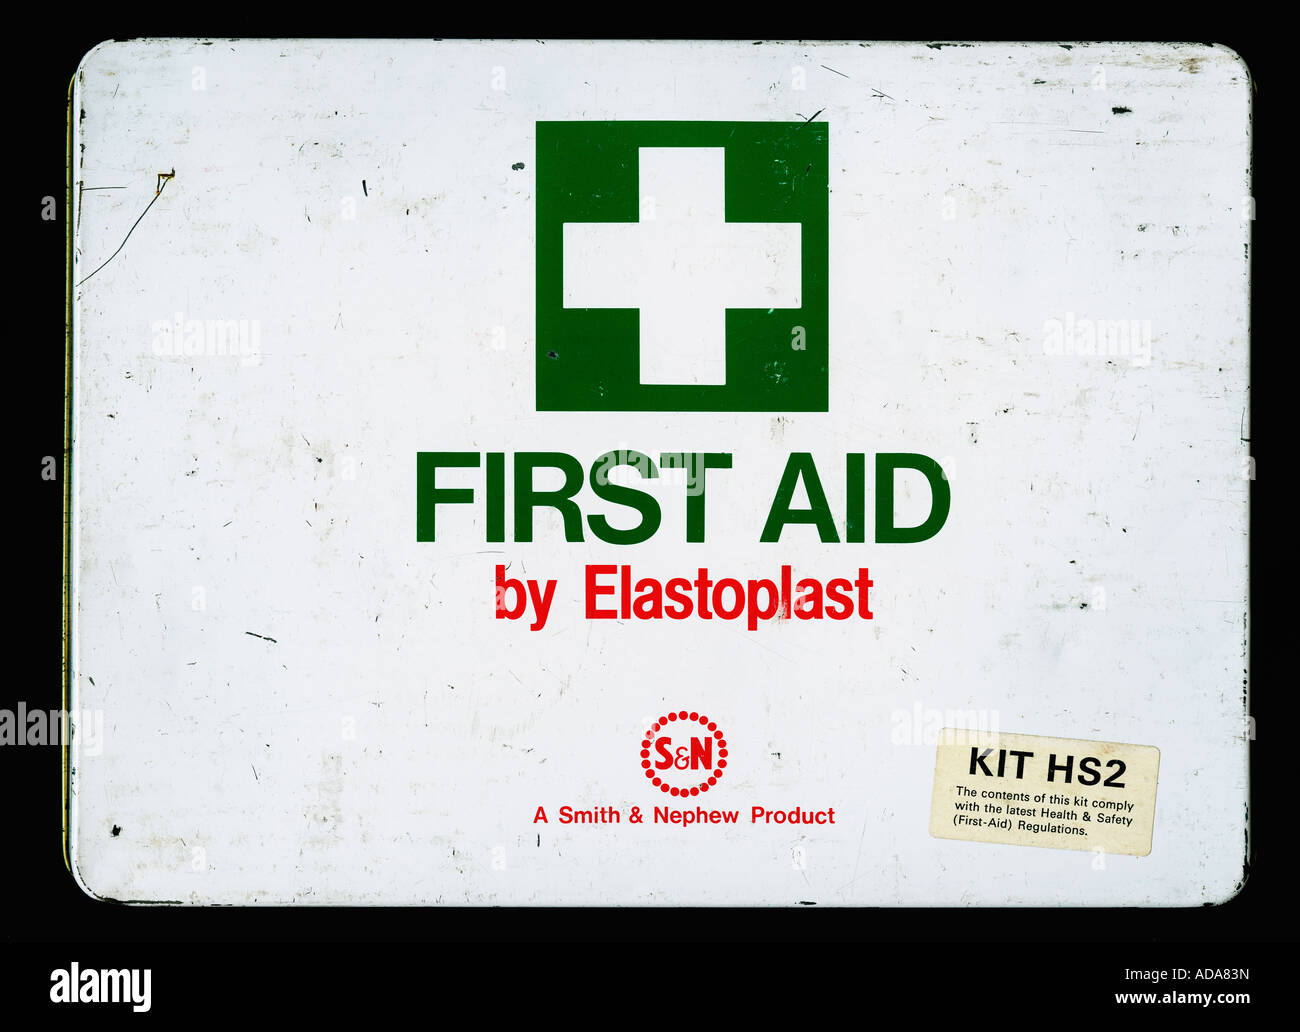 old first aid kit stock photos old first aid kit stock images alamy